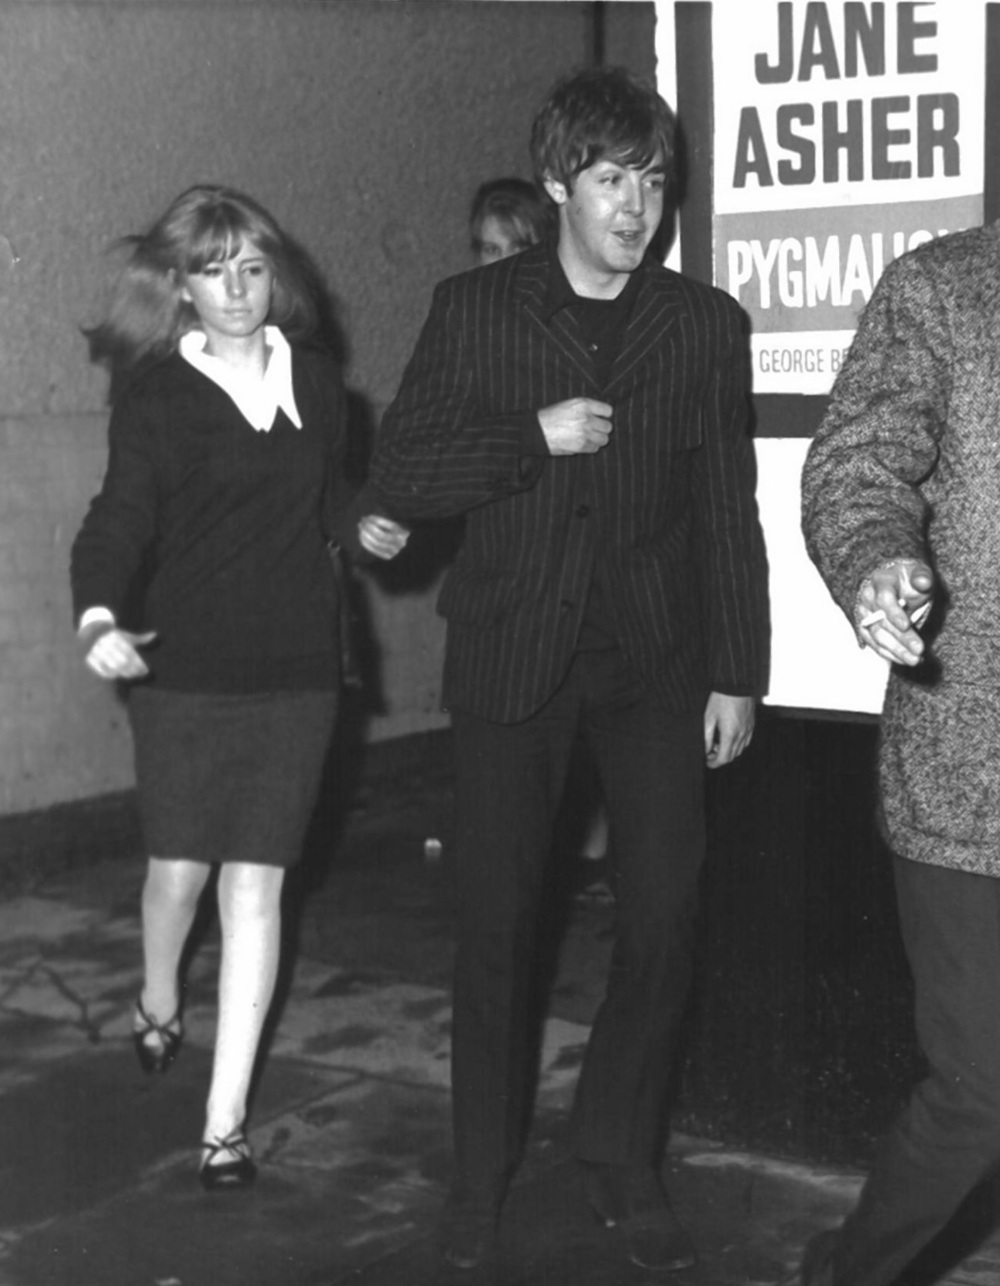 Jane Asher with Paul McCartney, 1965.